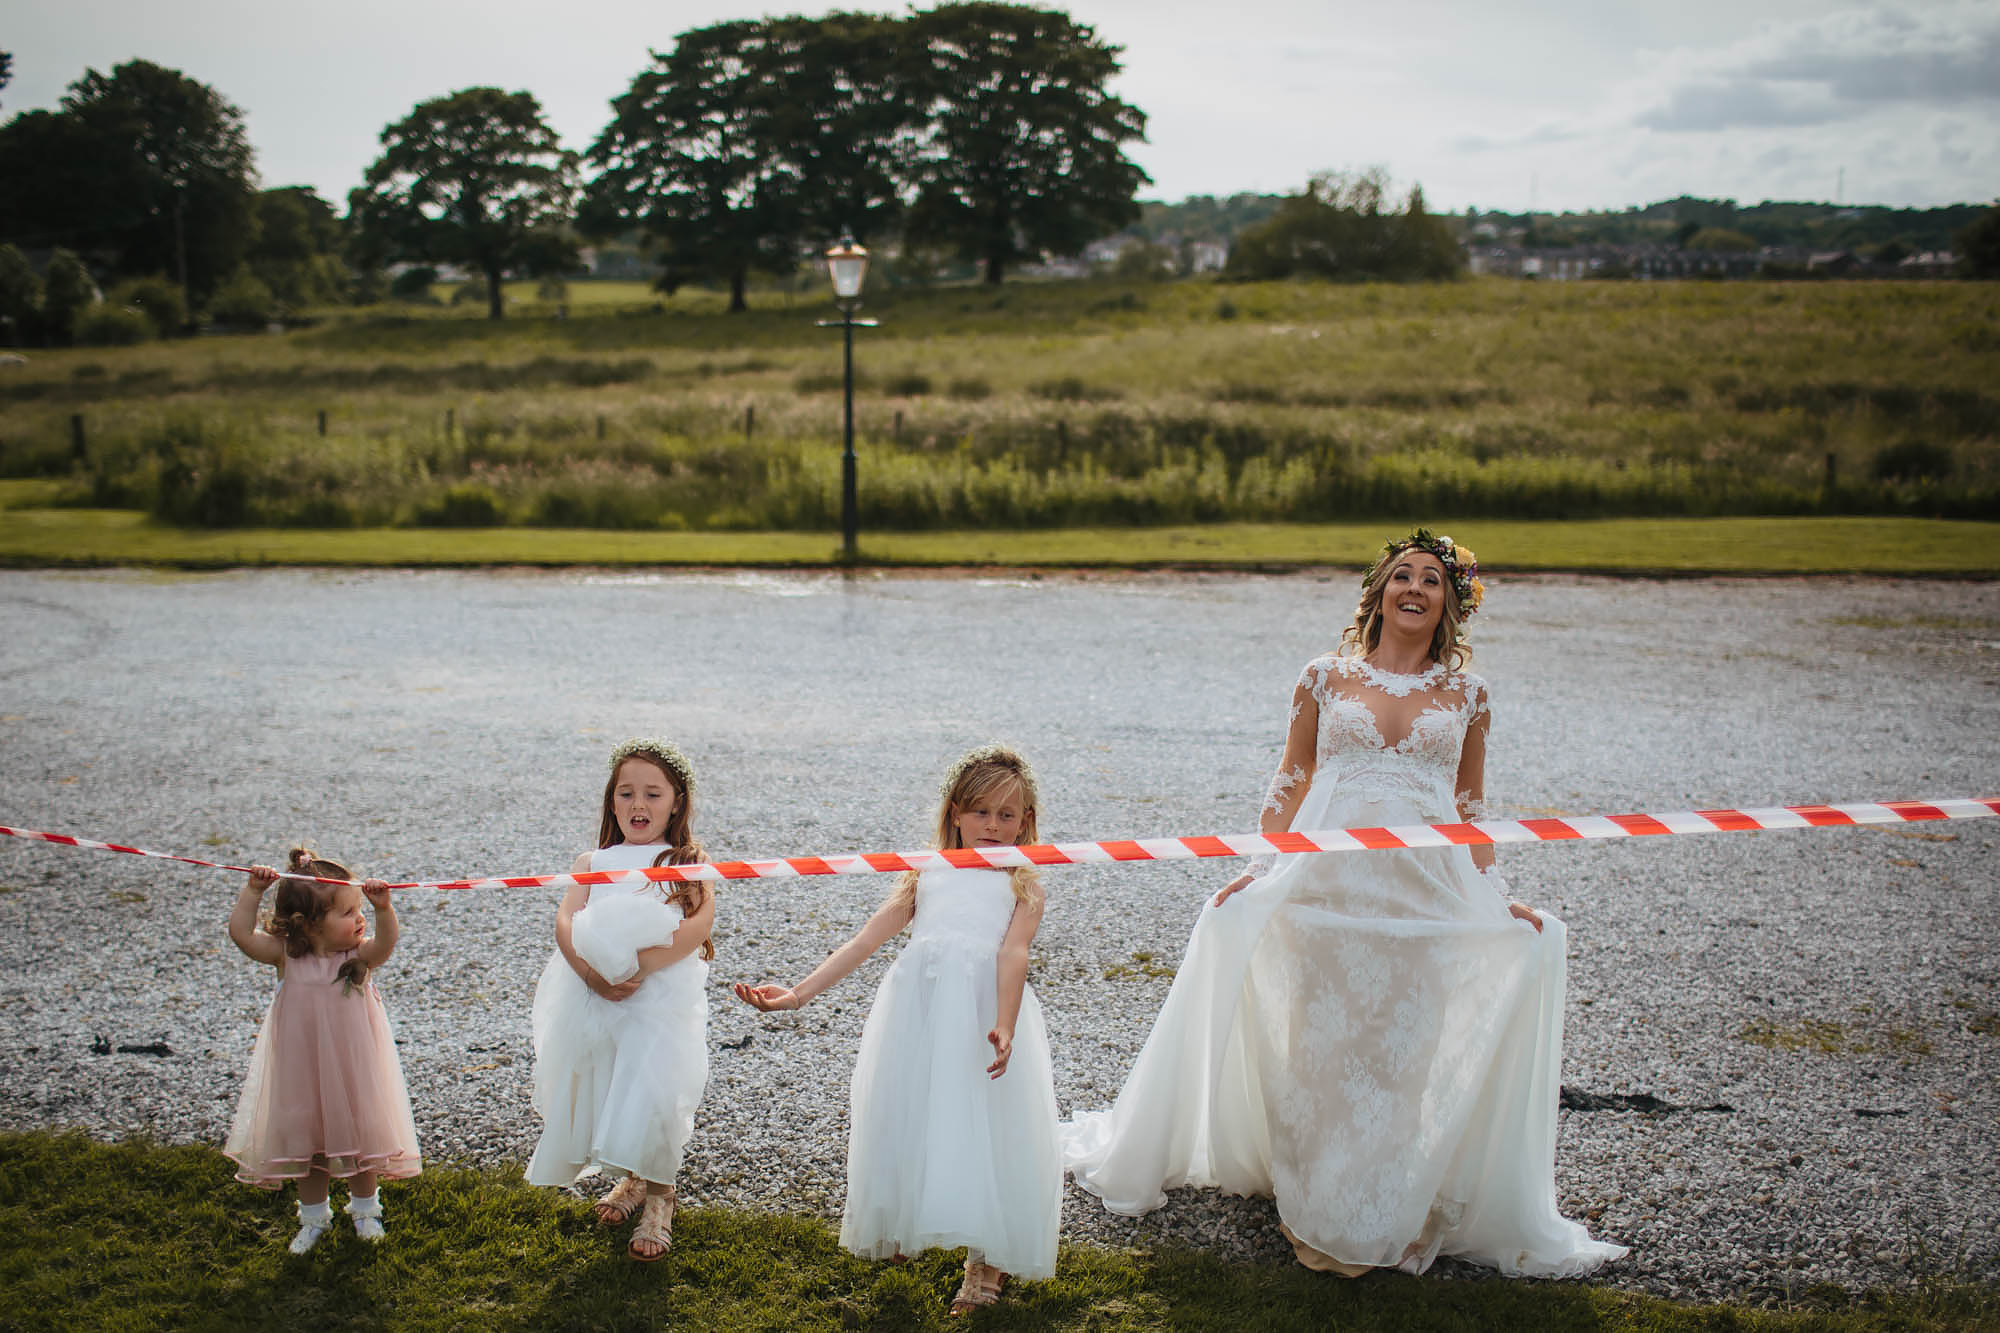 Bride and bridesmaids limbo under red tape at a wedding